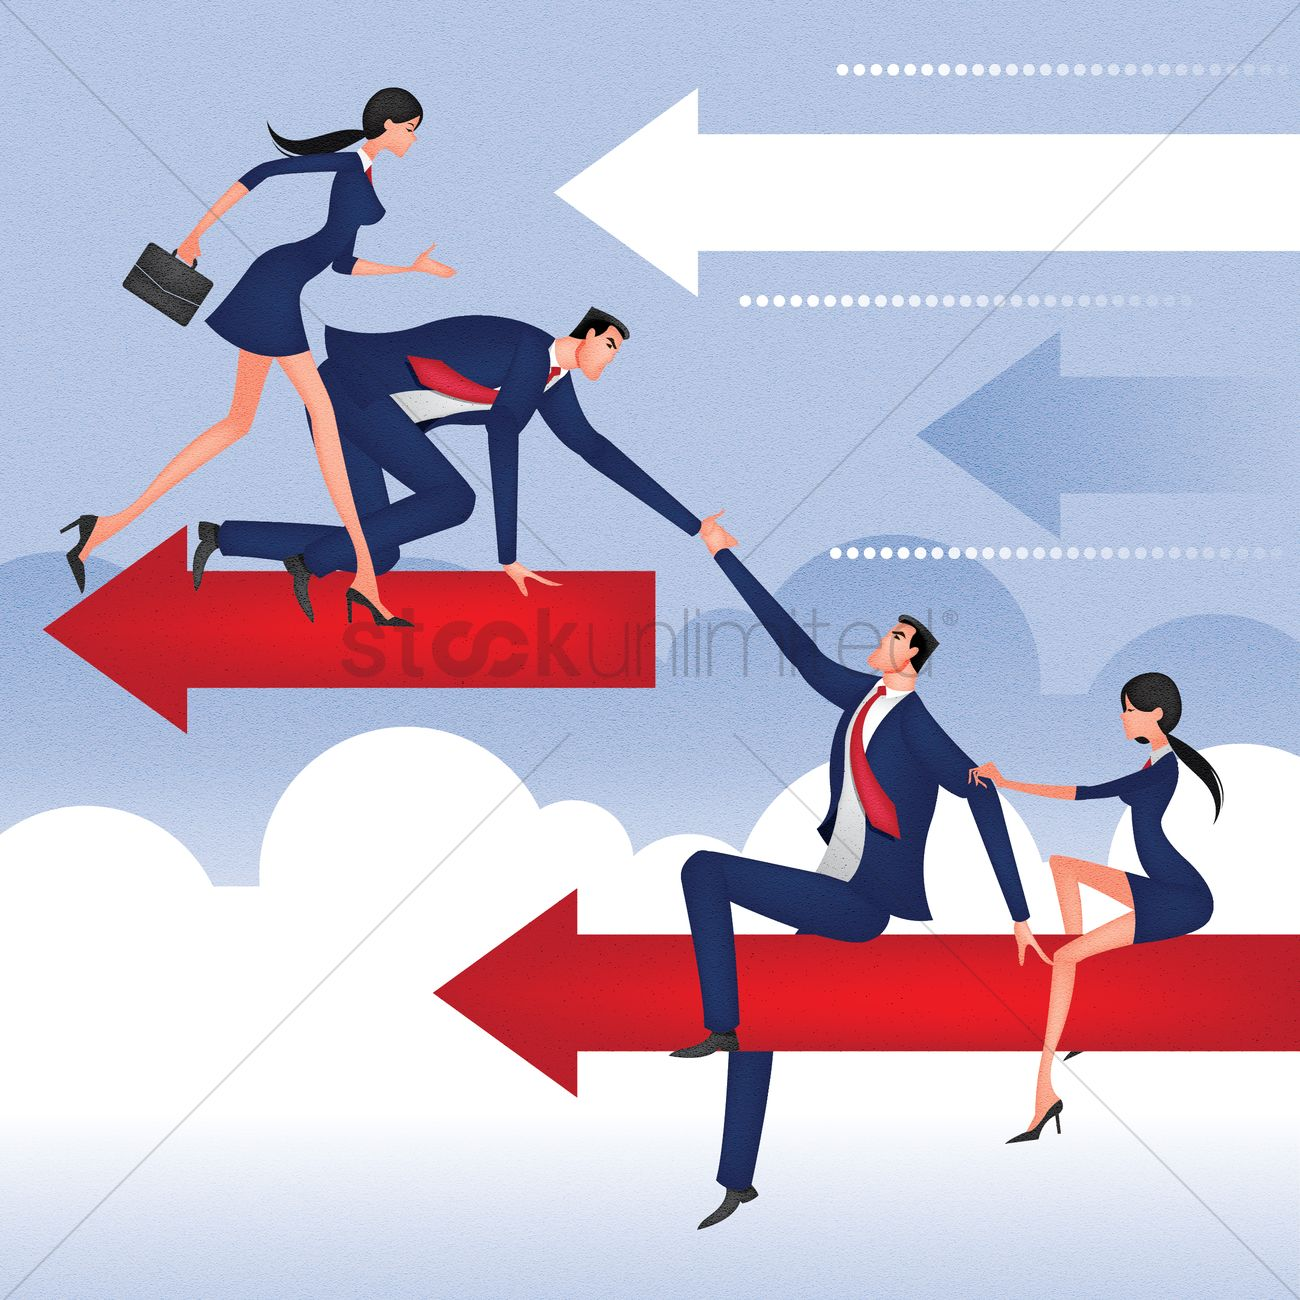 Business People Helping Each Other Vector Image